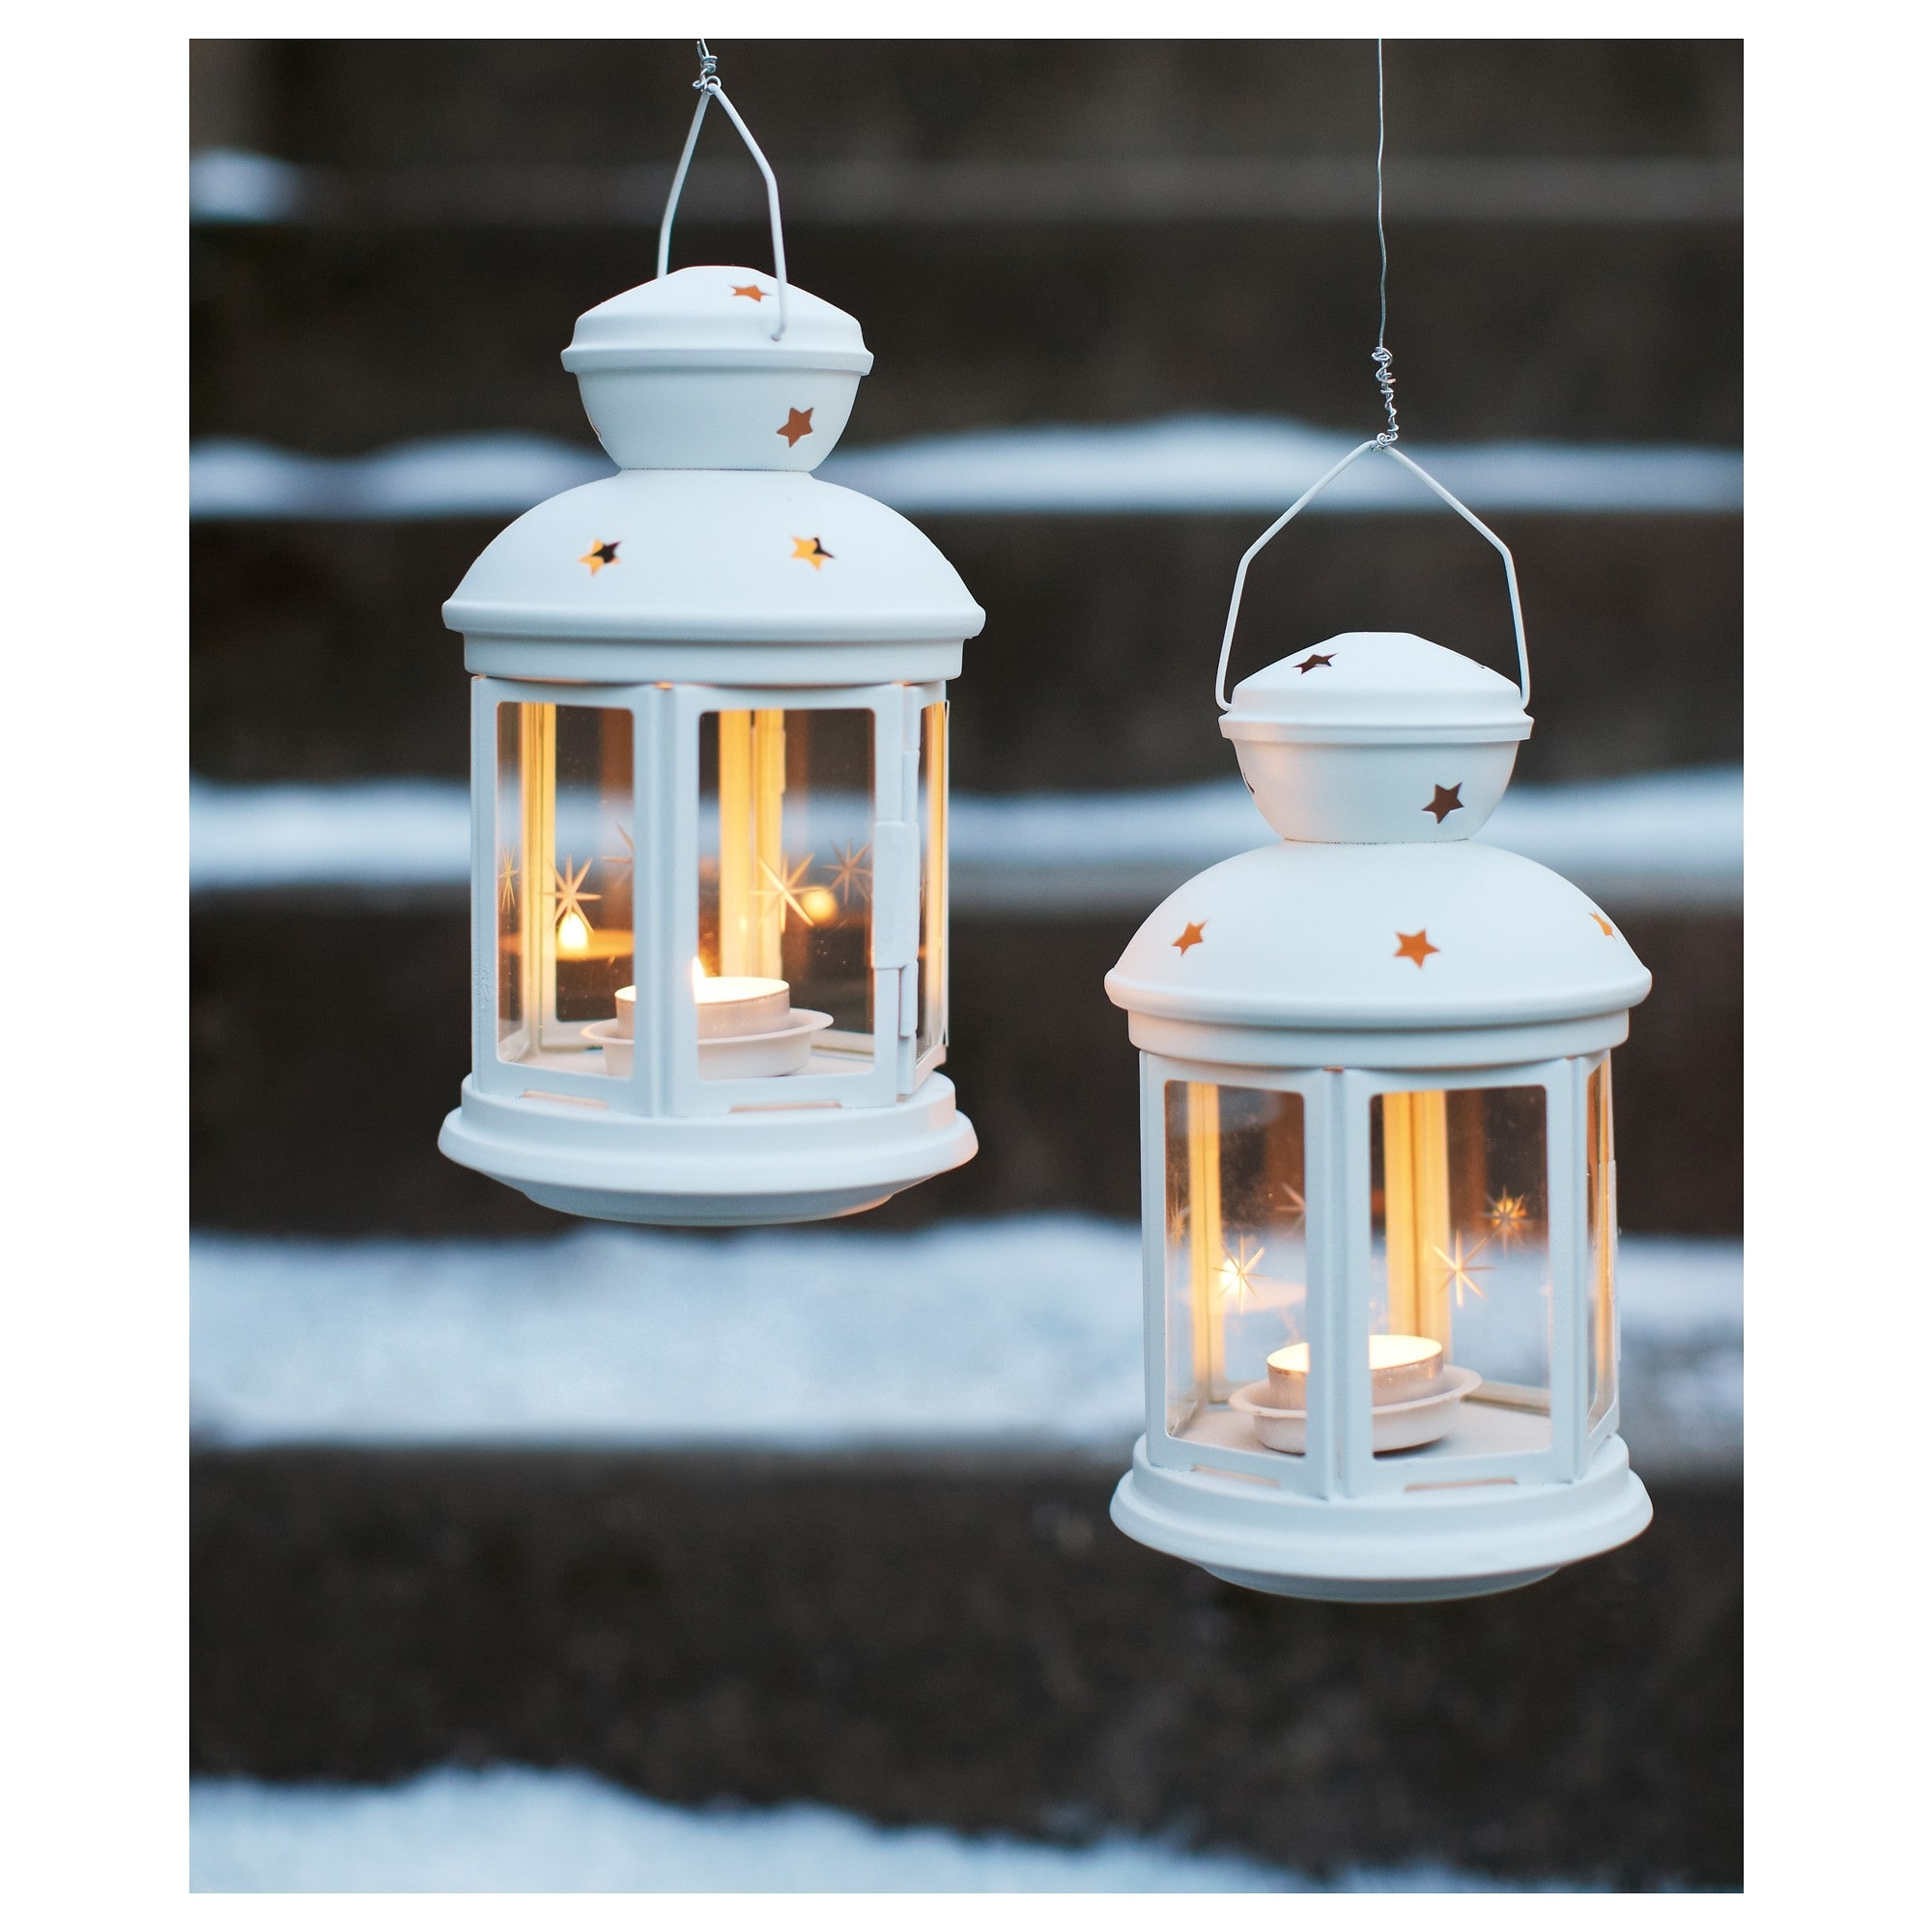 Rotera Lantern For Tealight In/outdoor White 21 Cm - Ikea for Ikea Outdoor Lanterns (Image 18 of 20)